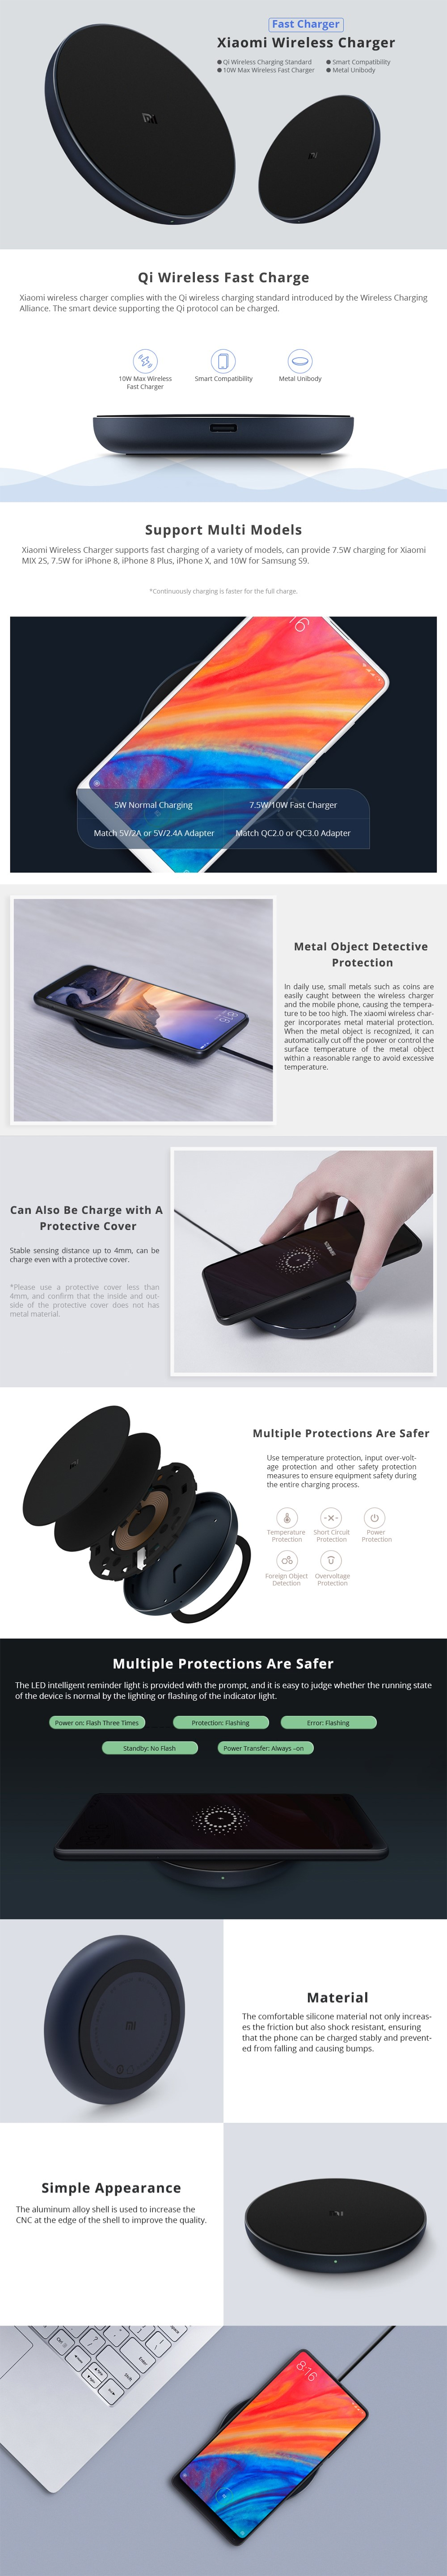 Xiaomi Qi Standard Wireless Fast Charger 10W for iPhone XS / XR / XS MAX Samsung Galaxy S7 S8 S9